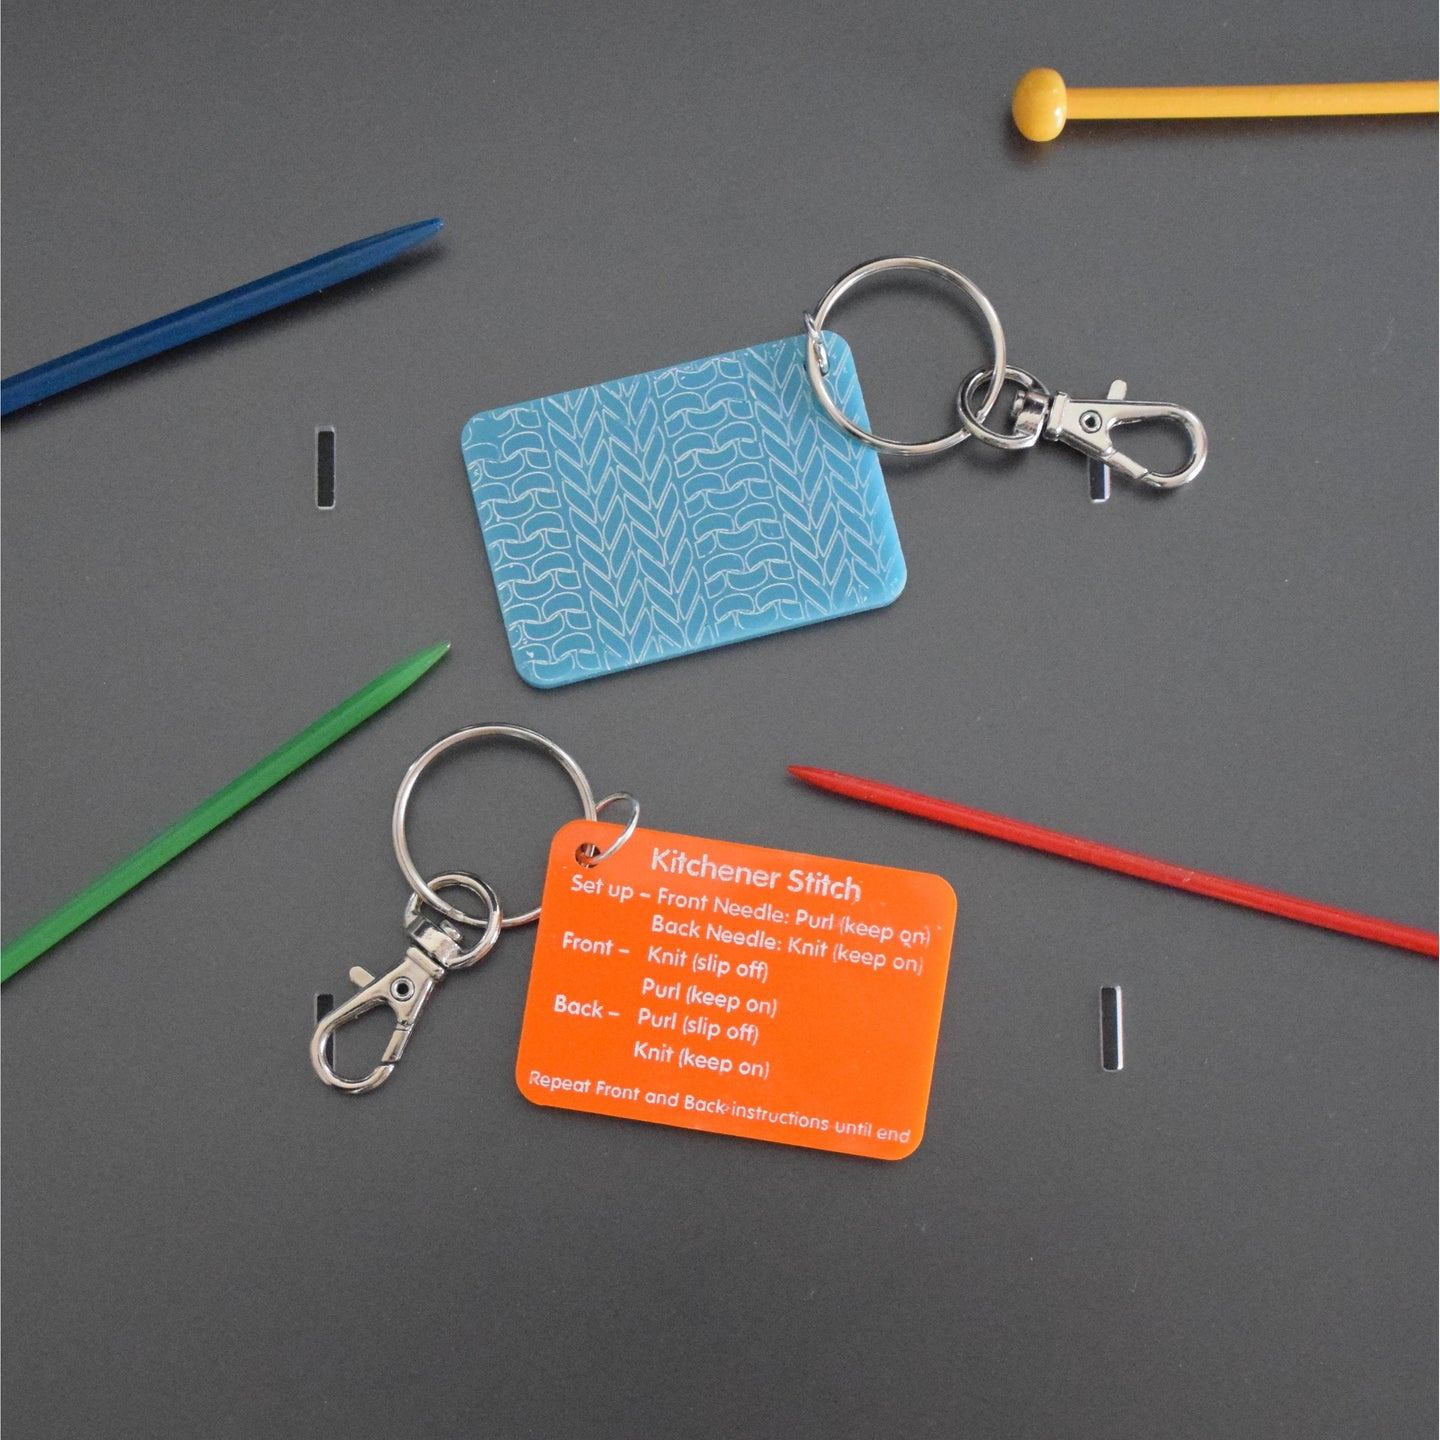 Kitchener reminder key ring